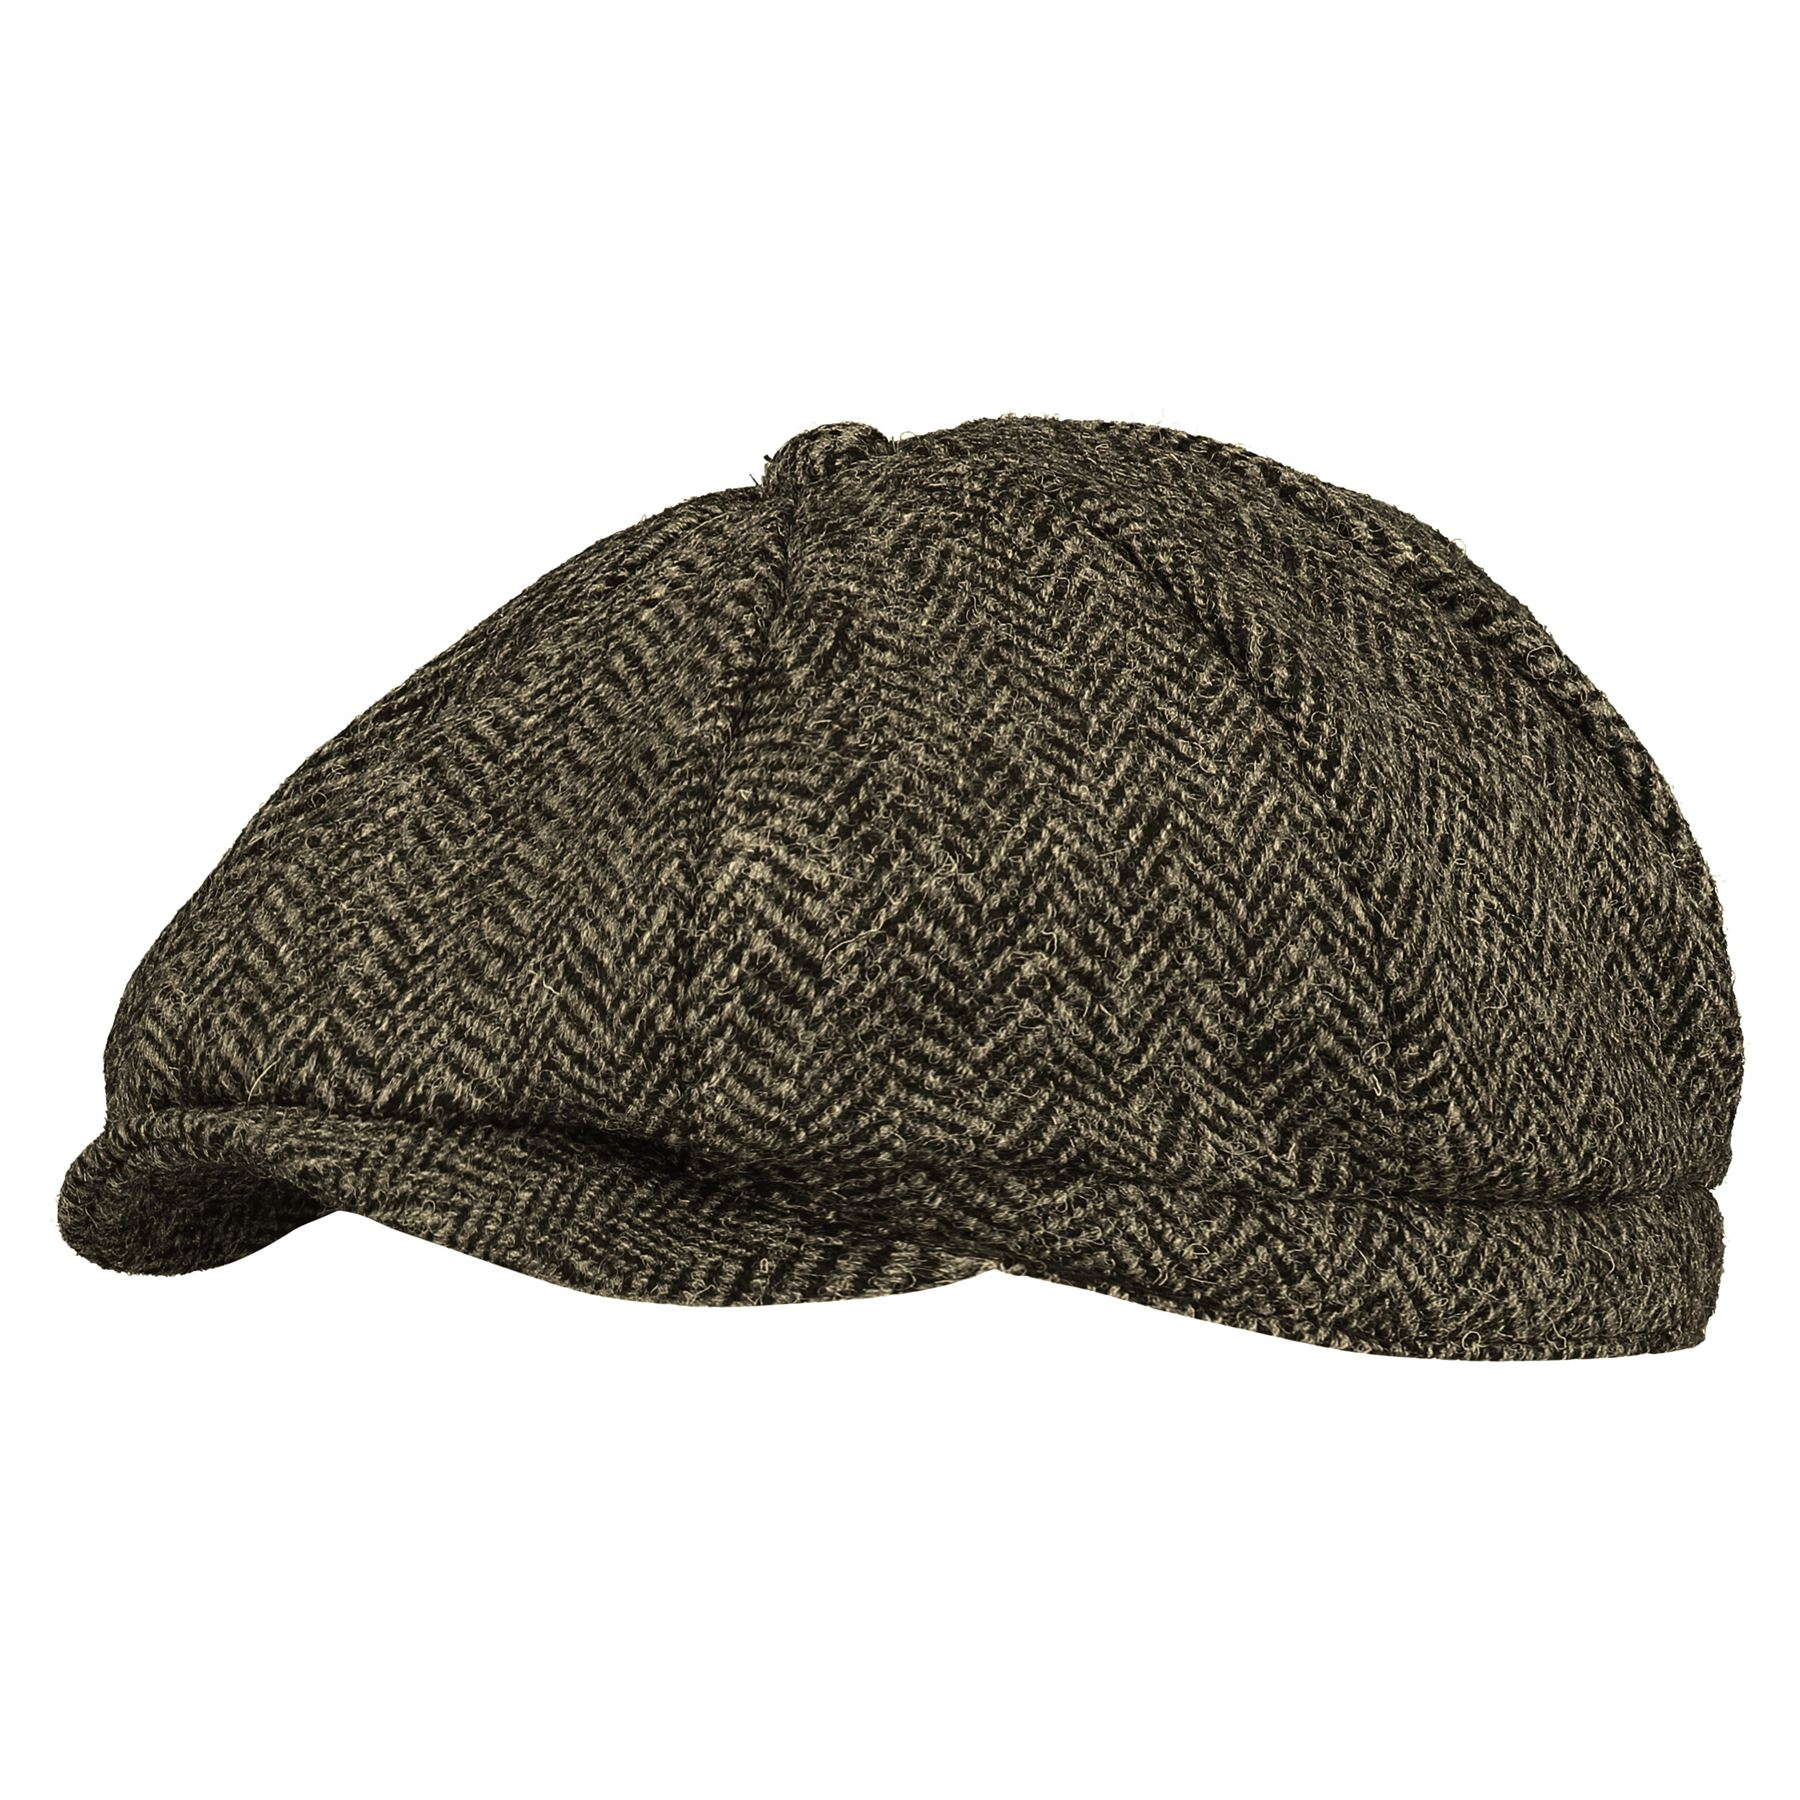 Image of Mens Bakerboy Hat - Tweed - 58